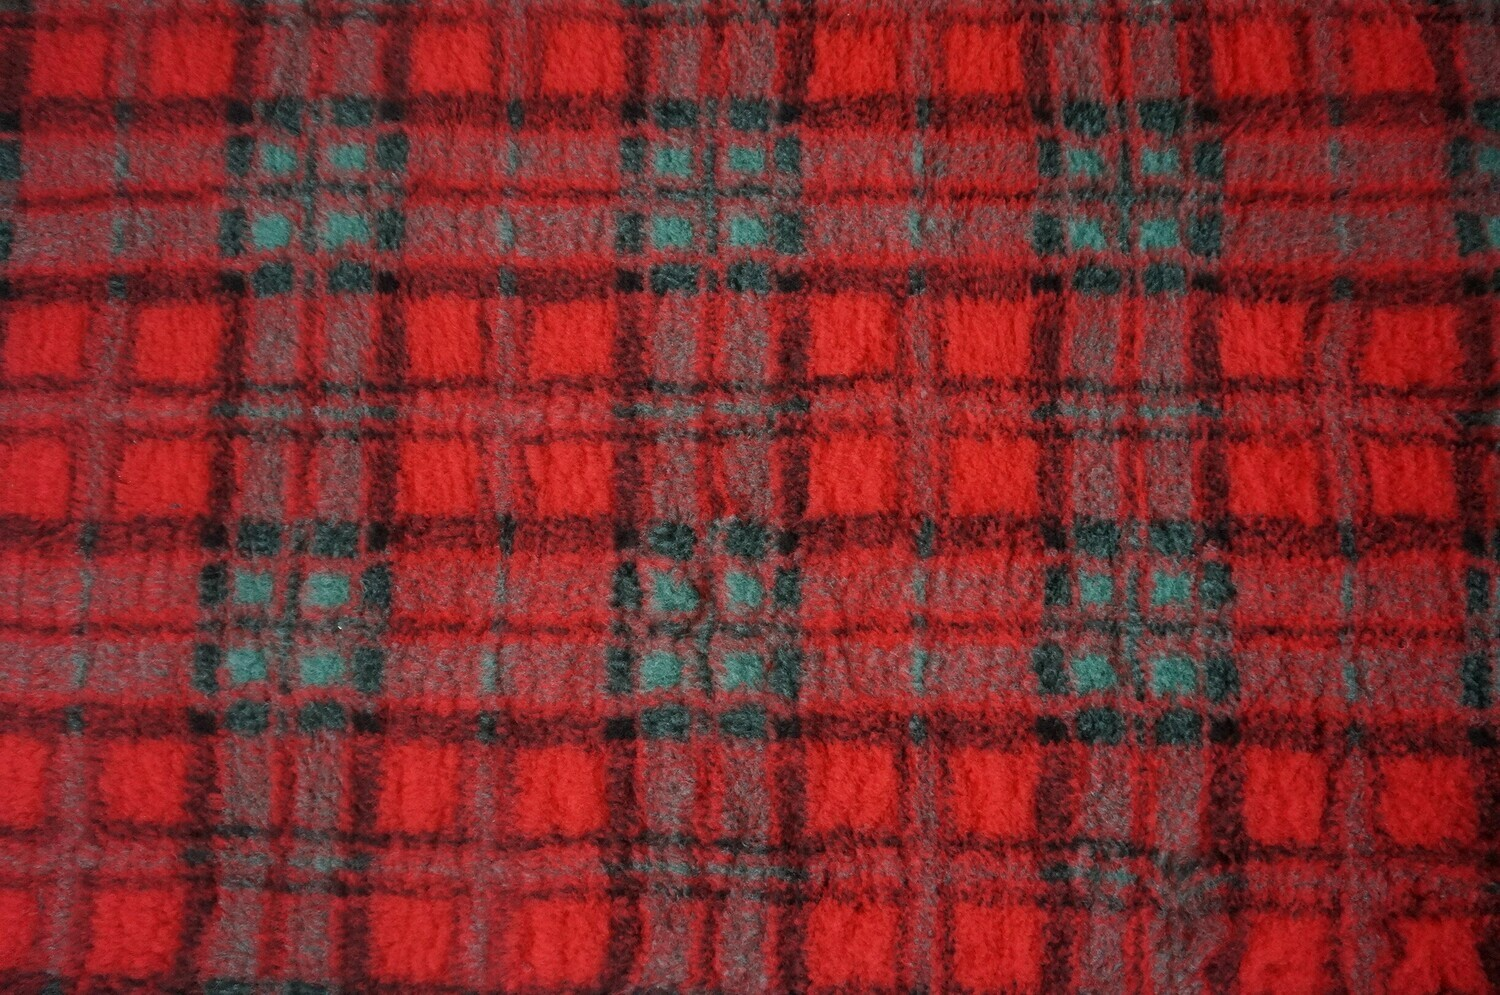 {15 x Metre Roll} : Ultra Premium - Non Slip Backing : Red Diamond Tartan - Ref : (6316)